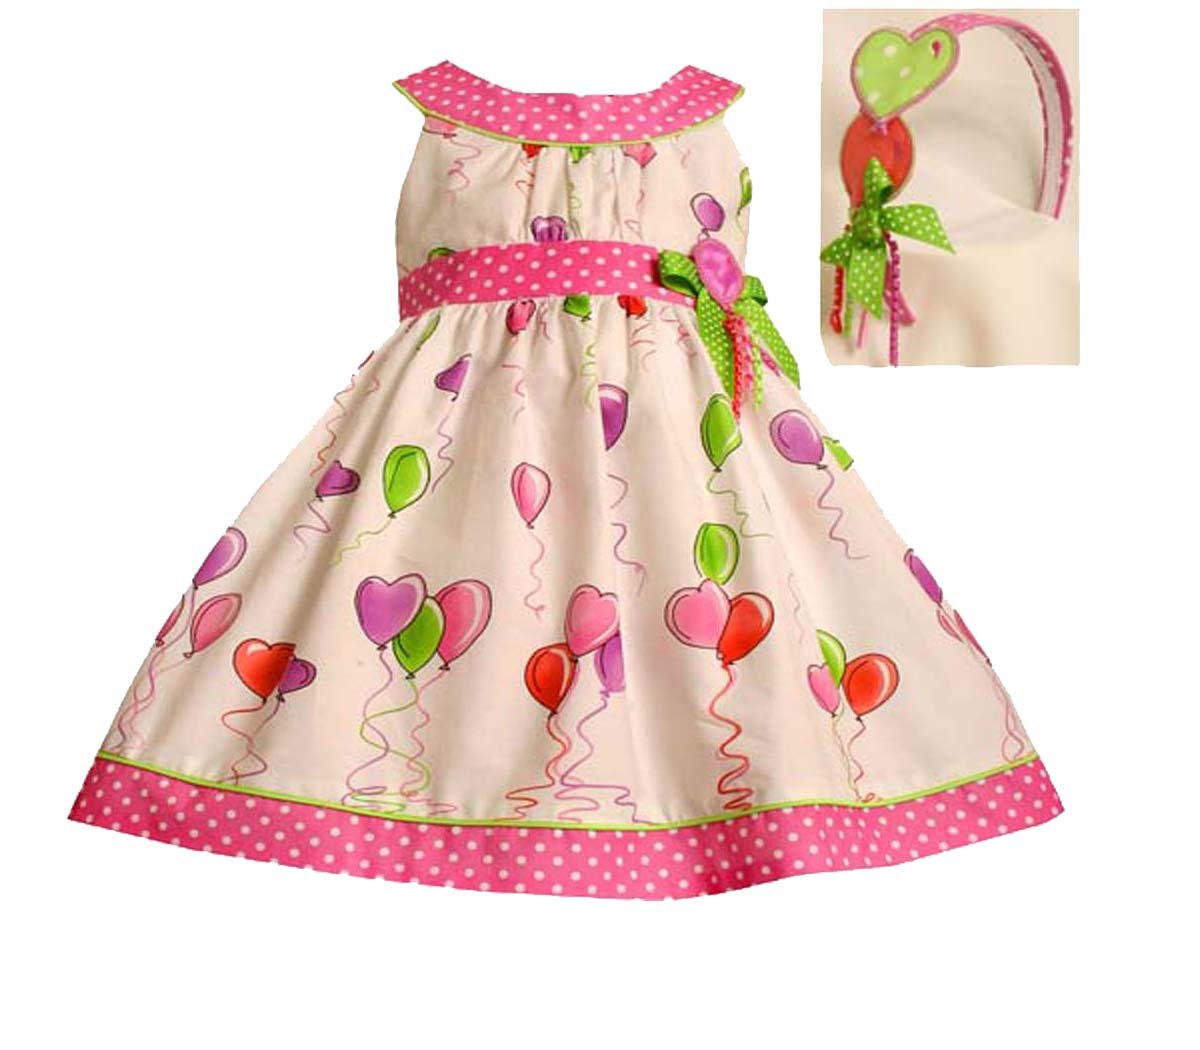 92f344523 Amazon.com  Bonnie Jean Baby Infant Girls 12M-24M WHITE PINK GREEN ...